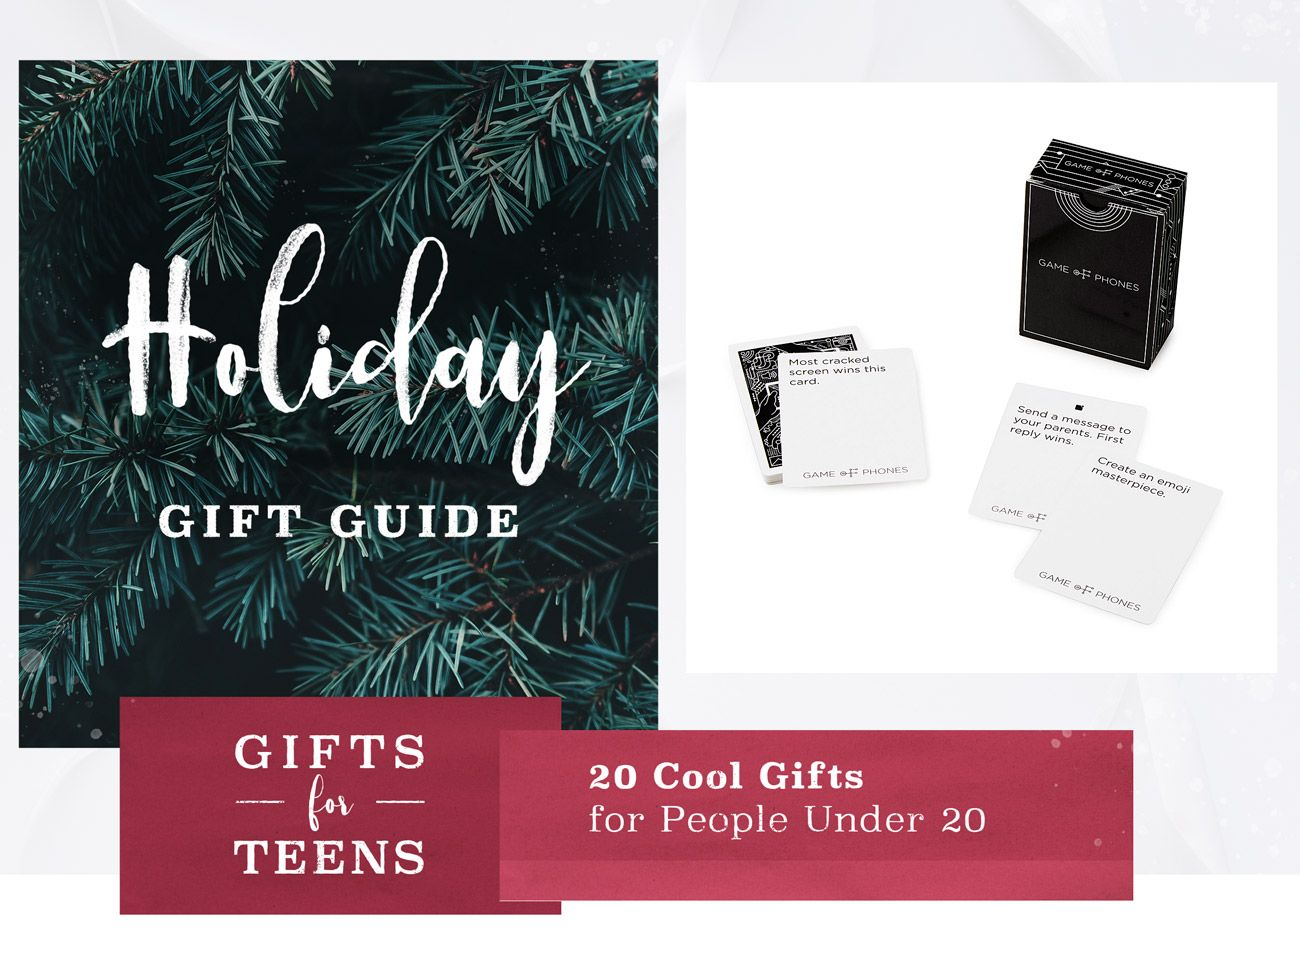 Gifts for Teens: 20 Cool Gifts for People Under 20 - | Pinterest | Teen